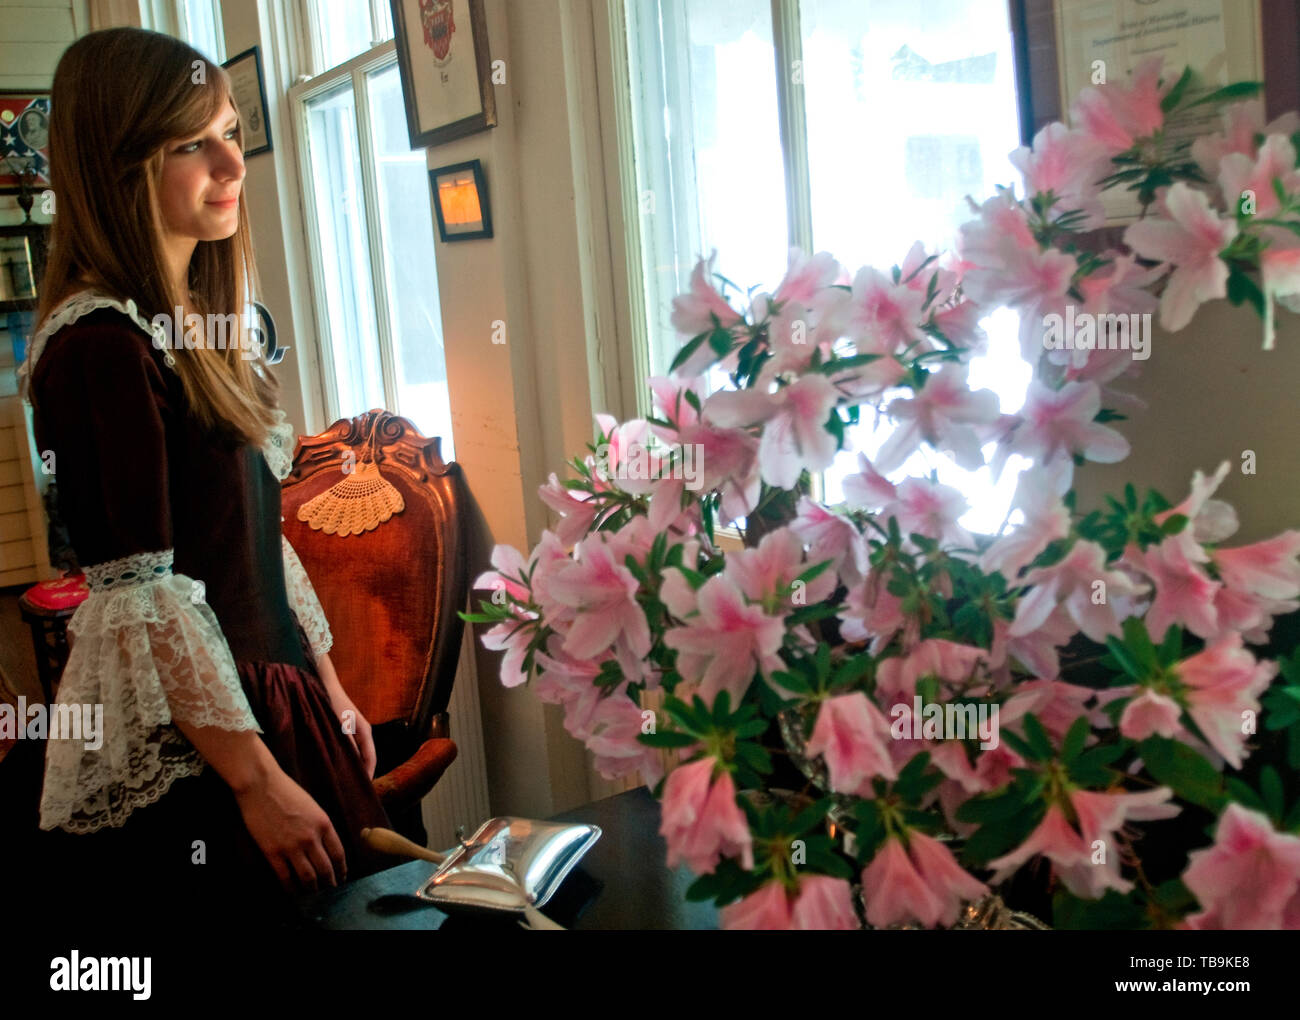 A tour guide, dressed in period costume, gazes out the window at the garden at the Amzi Love Home in Columbus, Mississippi, April 17, 2010. - Stock Image